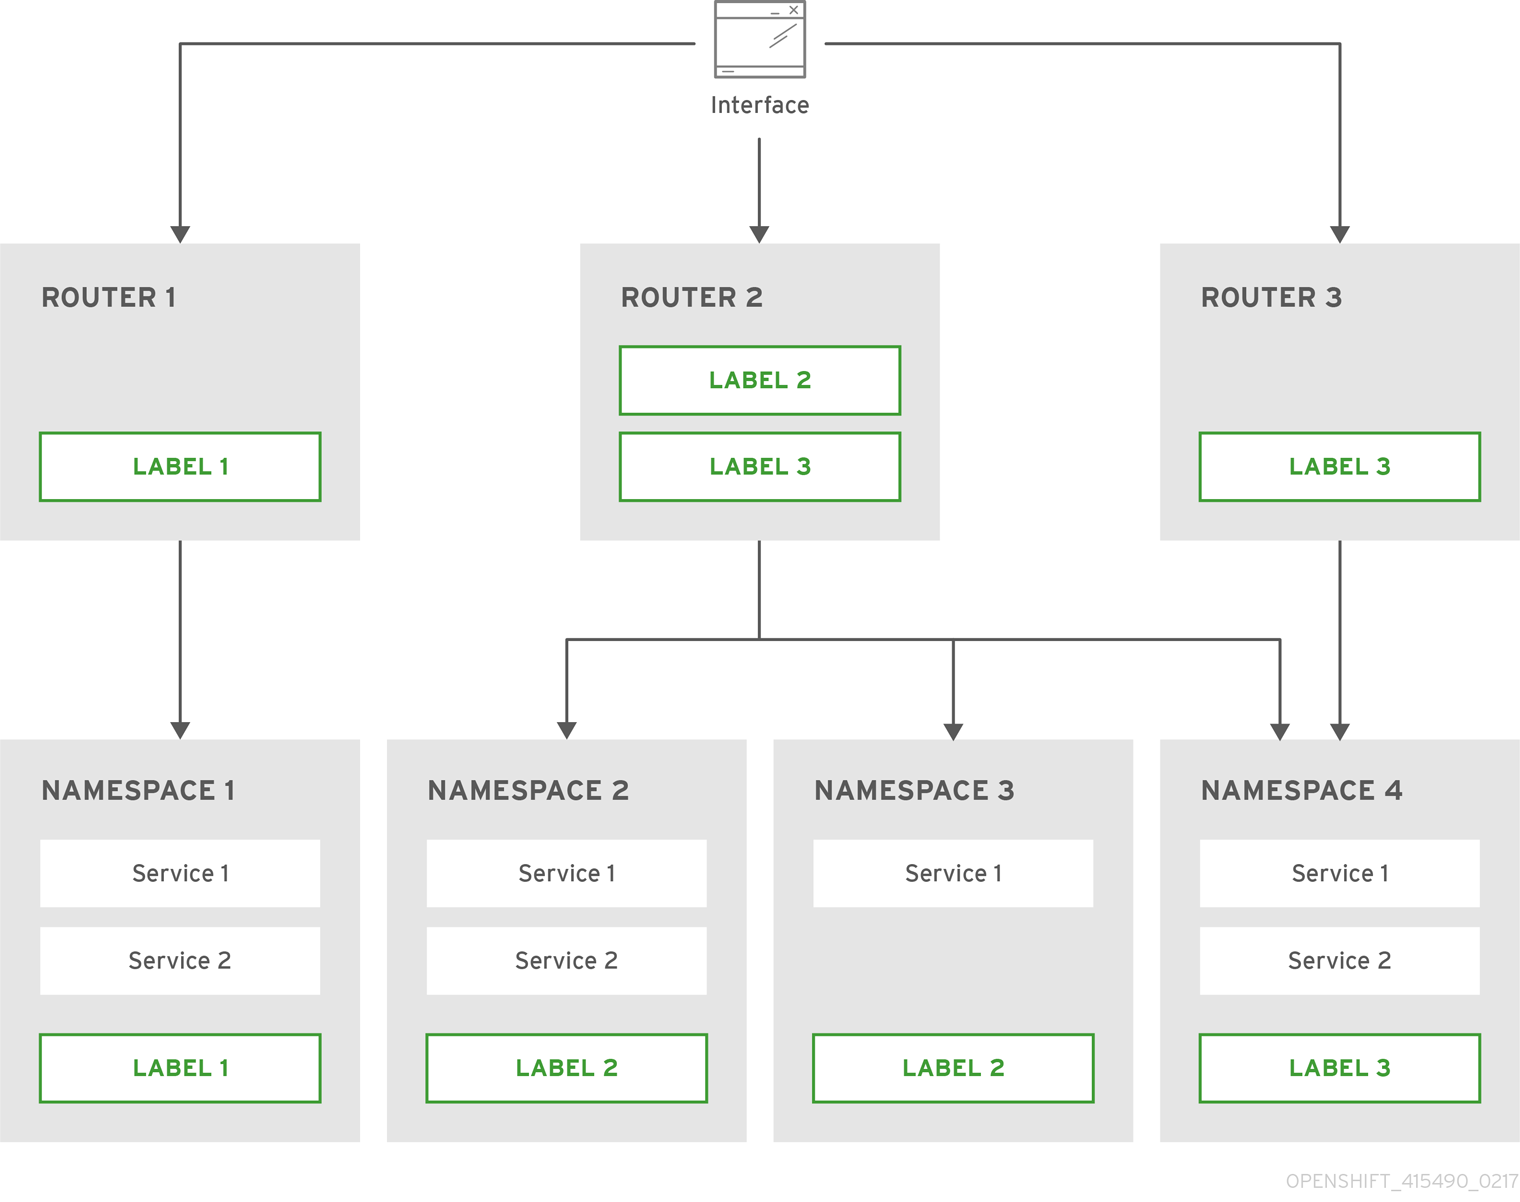 Router Sharding Based on Namespace Labels